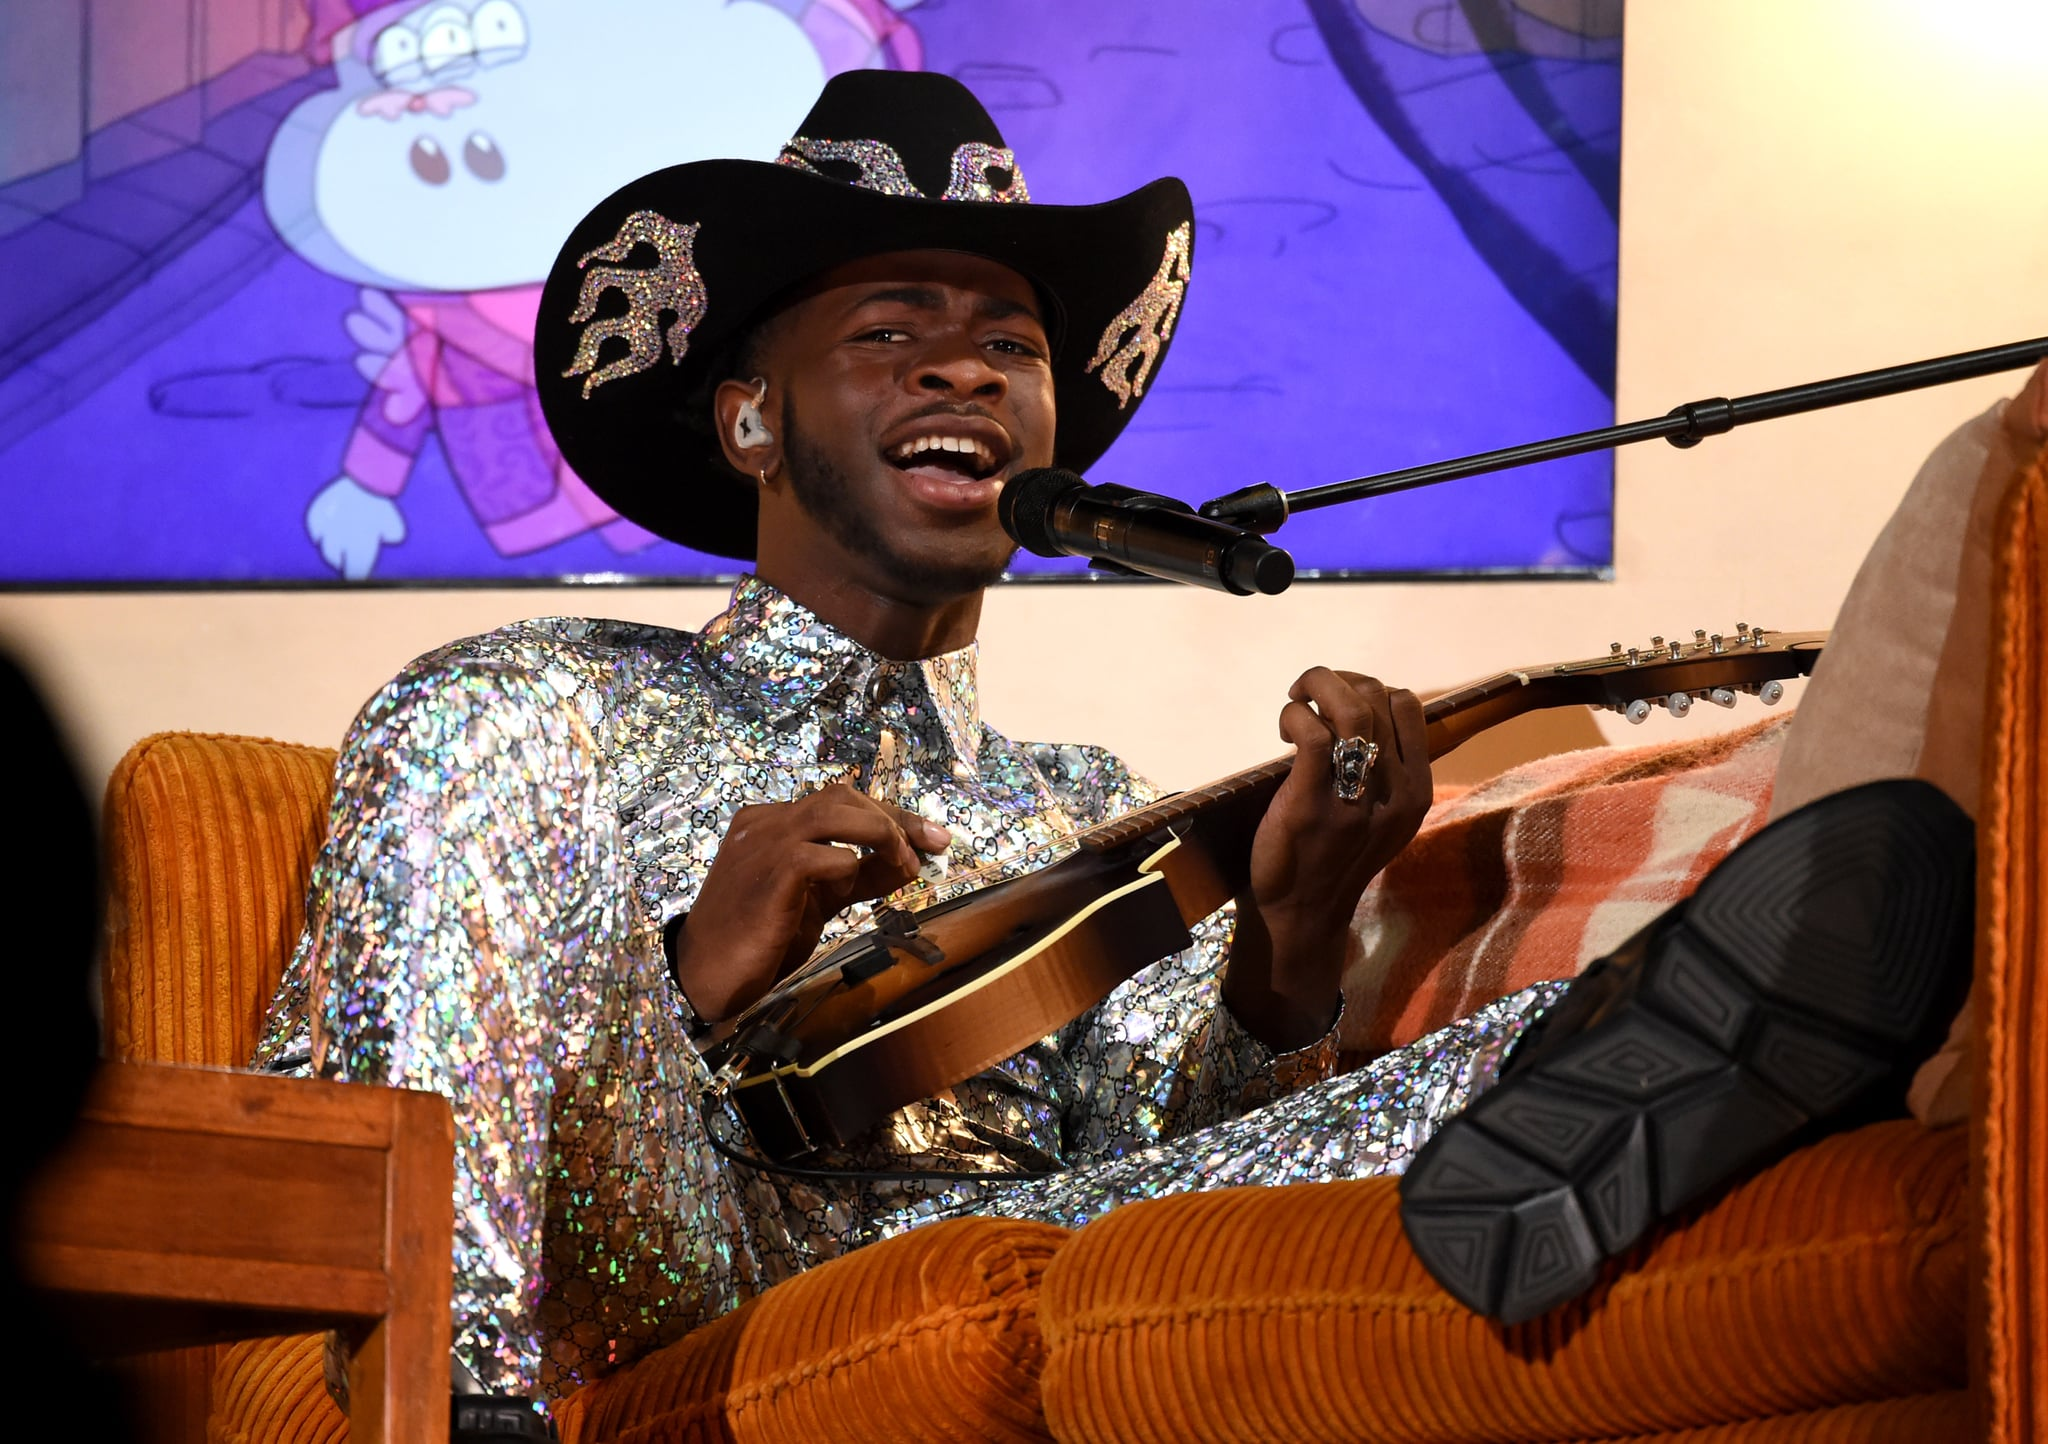 LOS ANGELES, CALIFORNIA - JANUARY 26: Lil Nas X performs at the 62nd Annual GRAMMY Awards on January 26, 2020 in Los Angeles, California. (Photo by John Shearer/Getty Images for The Recording Academy)